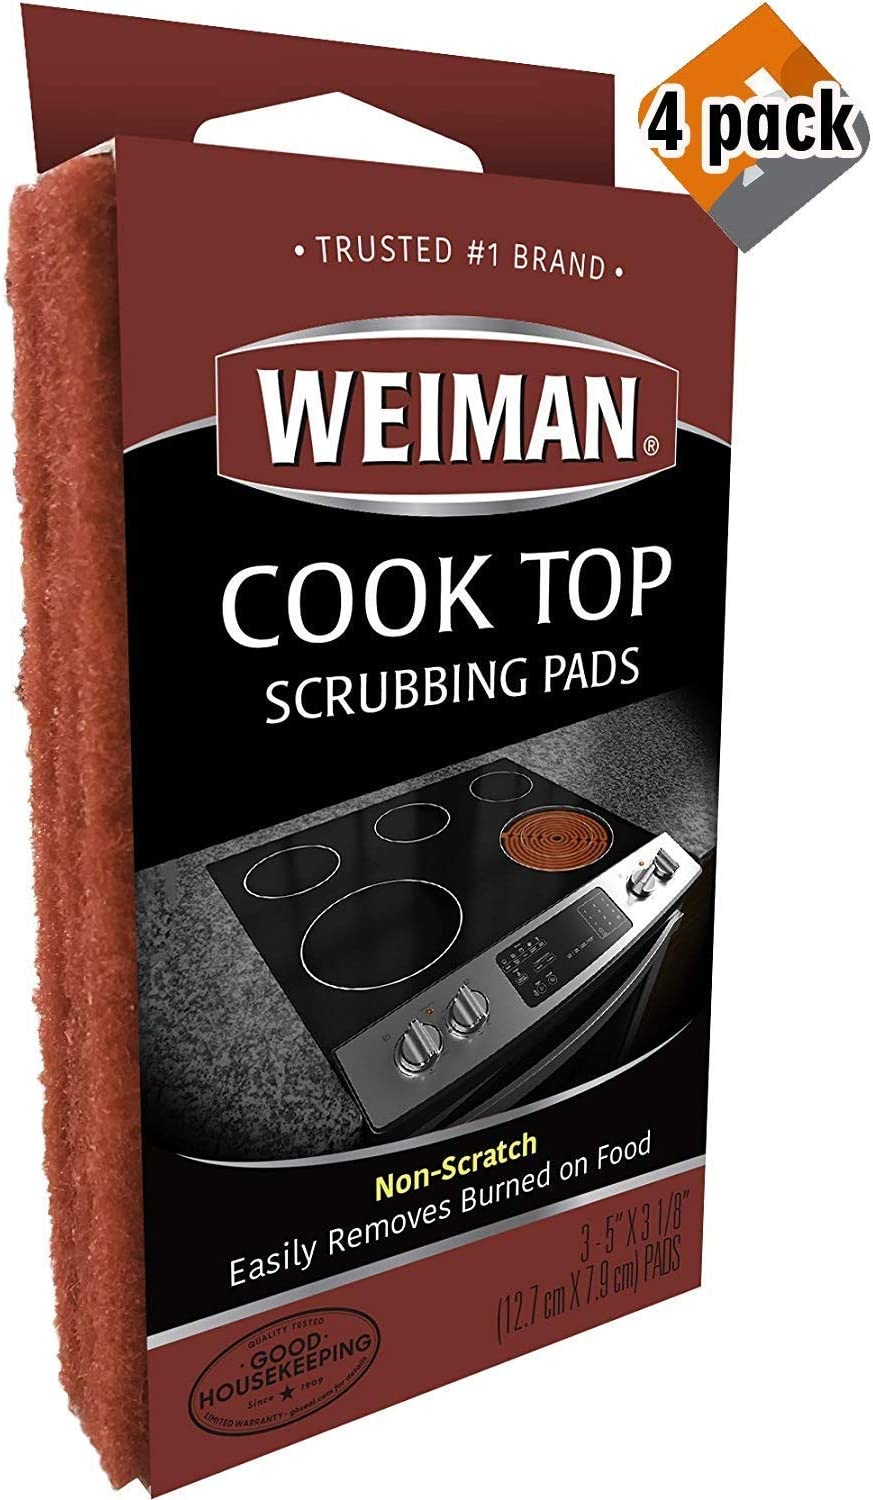 Weiman Cook Top Scrubbing Pads – Gently Clean and Remove Burned-on Food from All Smooth Top and Glass Cooktop Ranges, 3 Reusable Pads (Pack of 4)